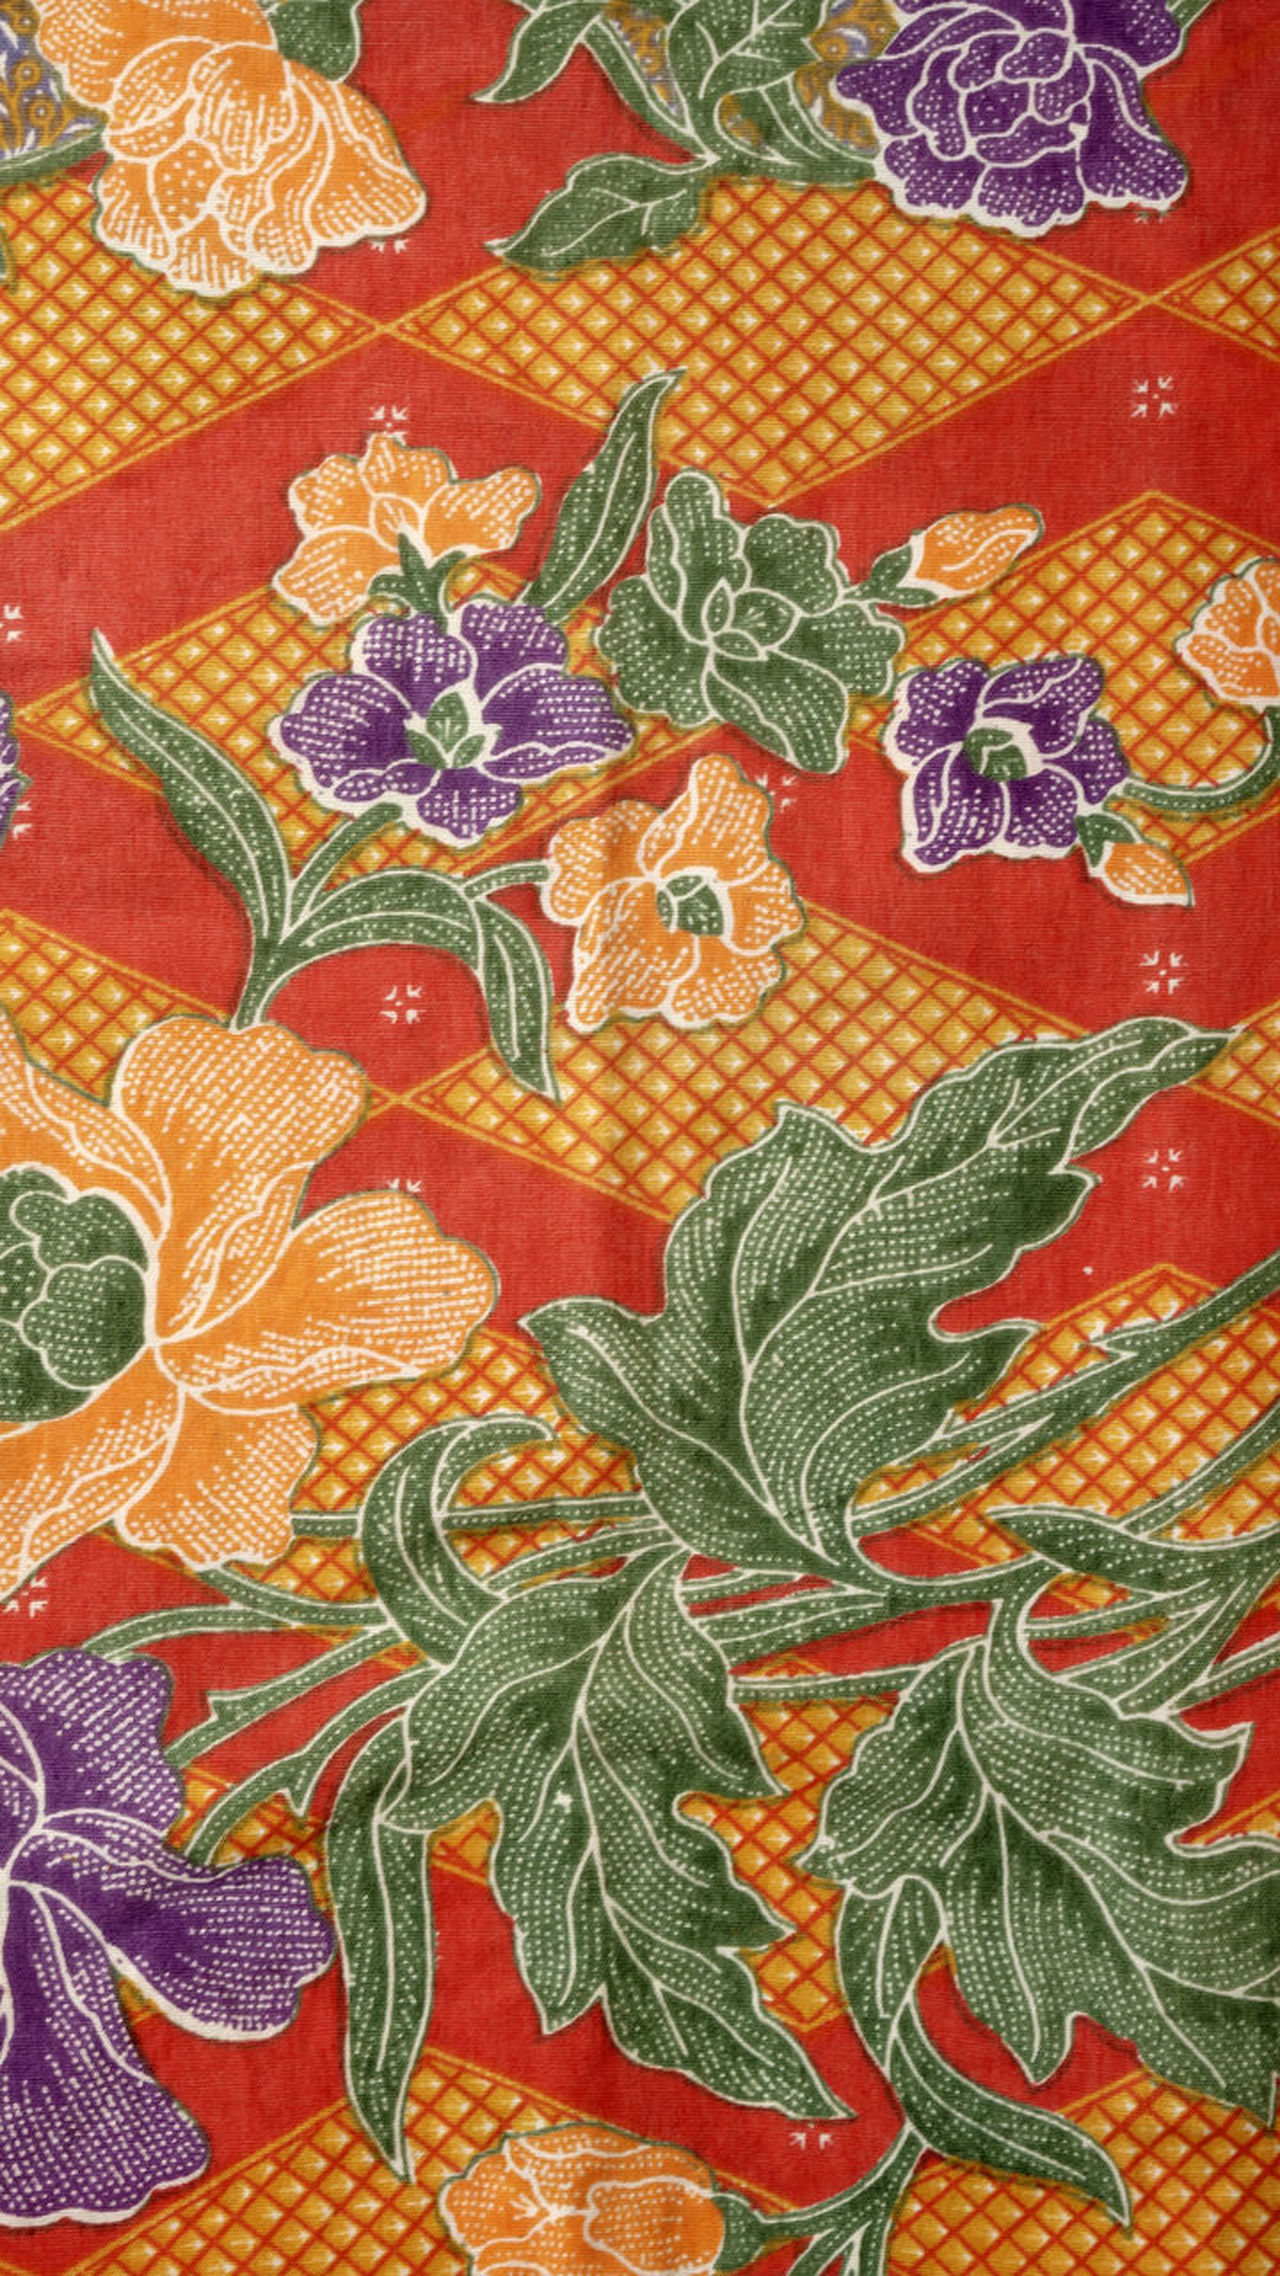 pattern of batik Artistic Backgrounds BatikIndonesia Close-up Day Fabric Fasion Full Frame Indoors  No People Pattern Patterns & Textures Seamless Pattern Textile Textured